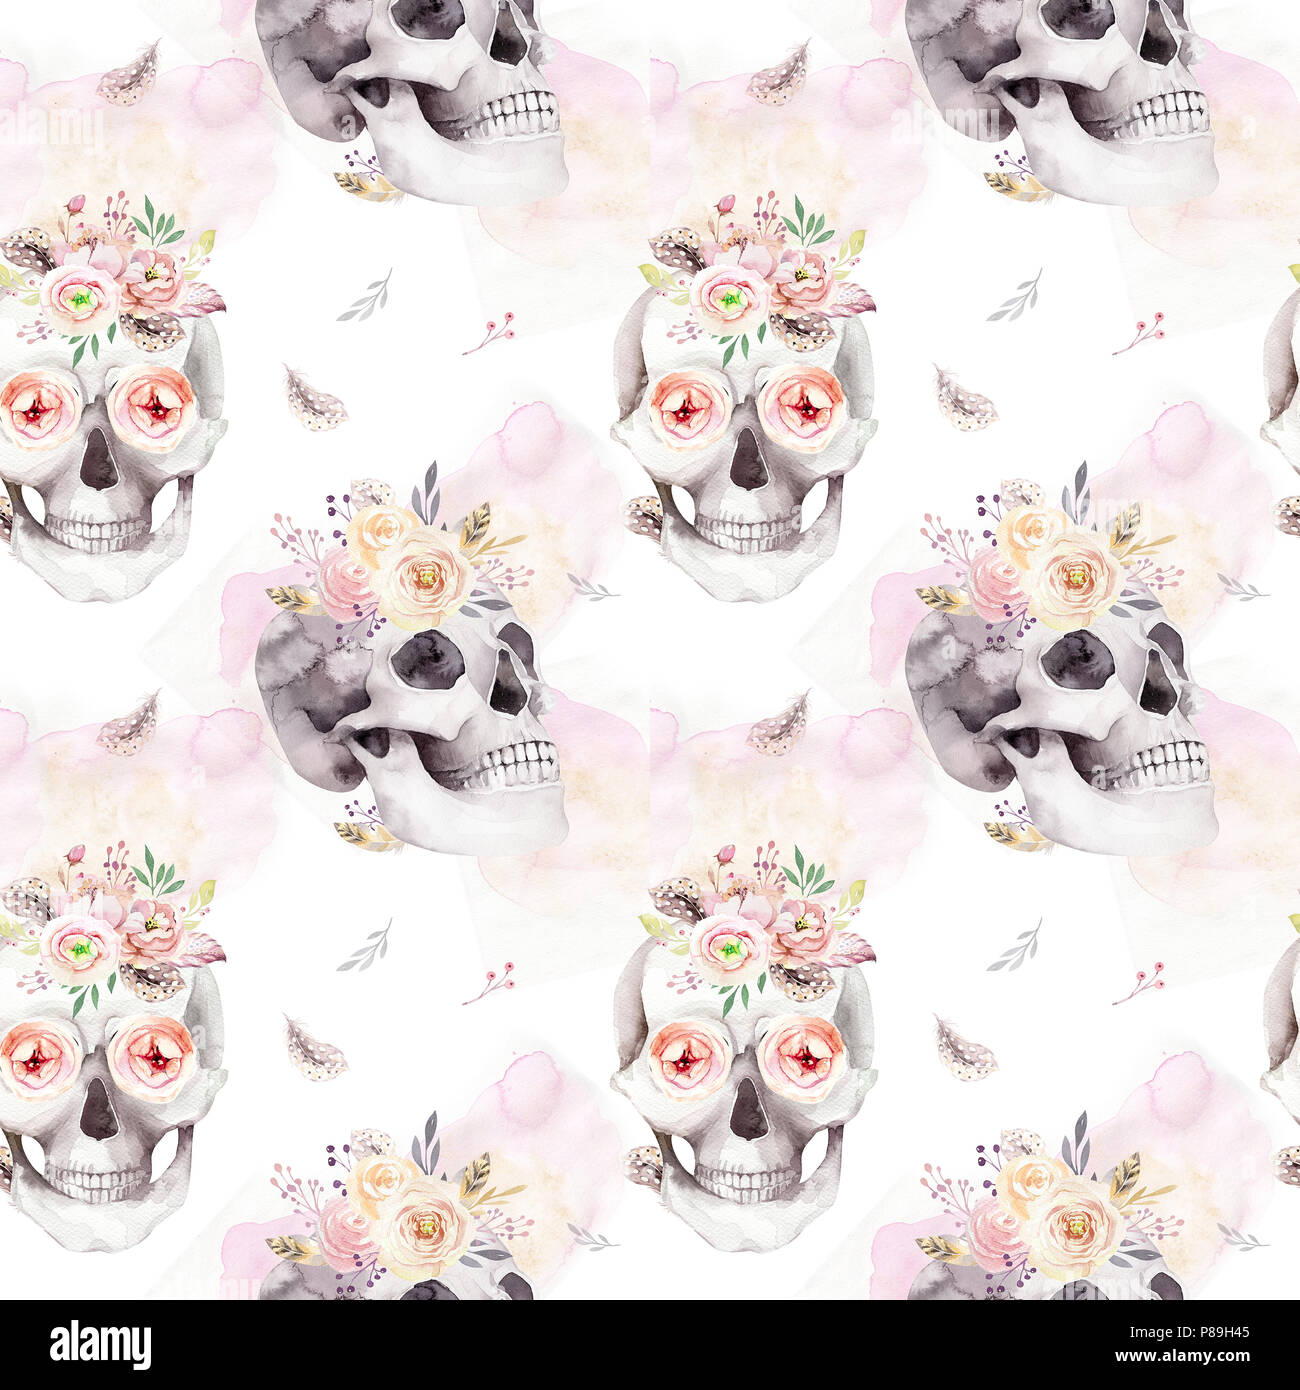 Vintage Watercolor Patterns With Skull And Roses Wildflowers And